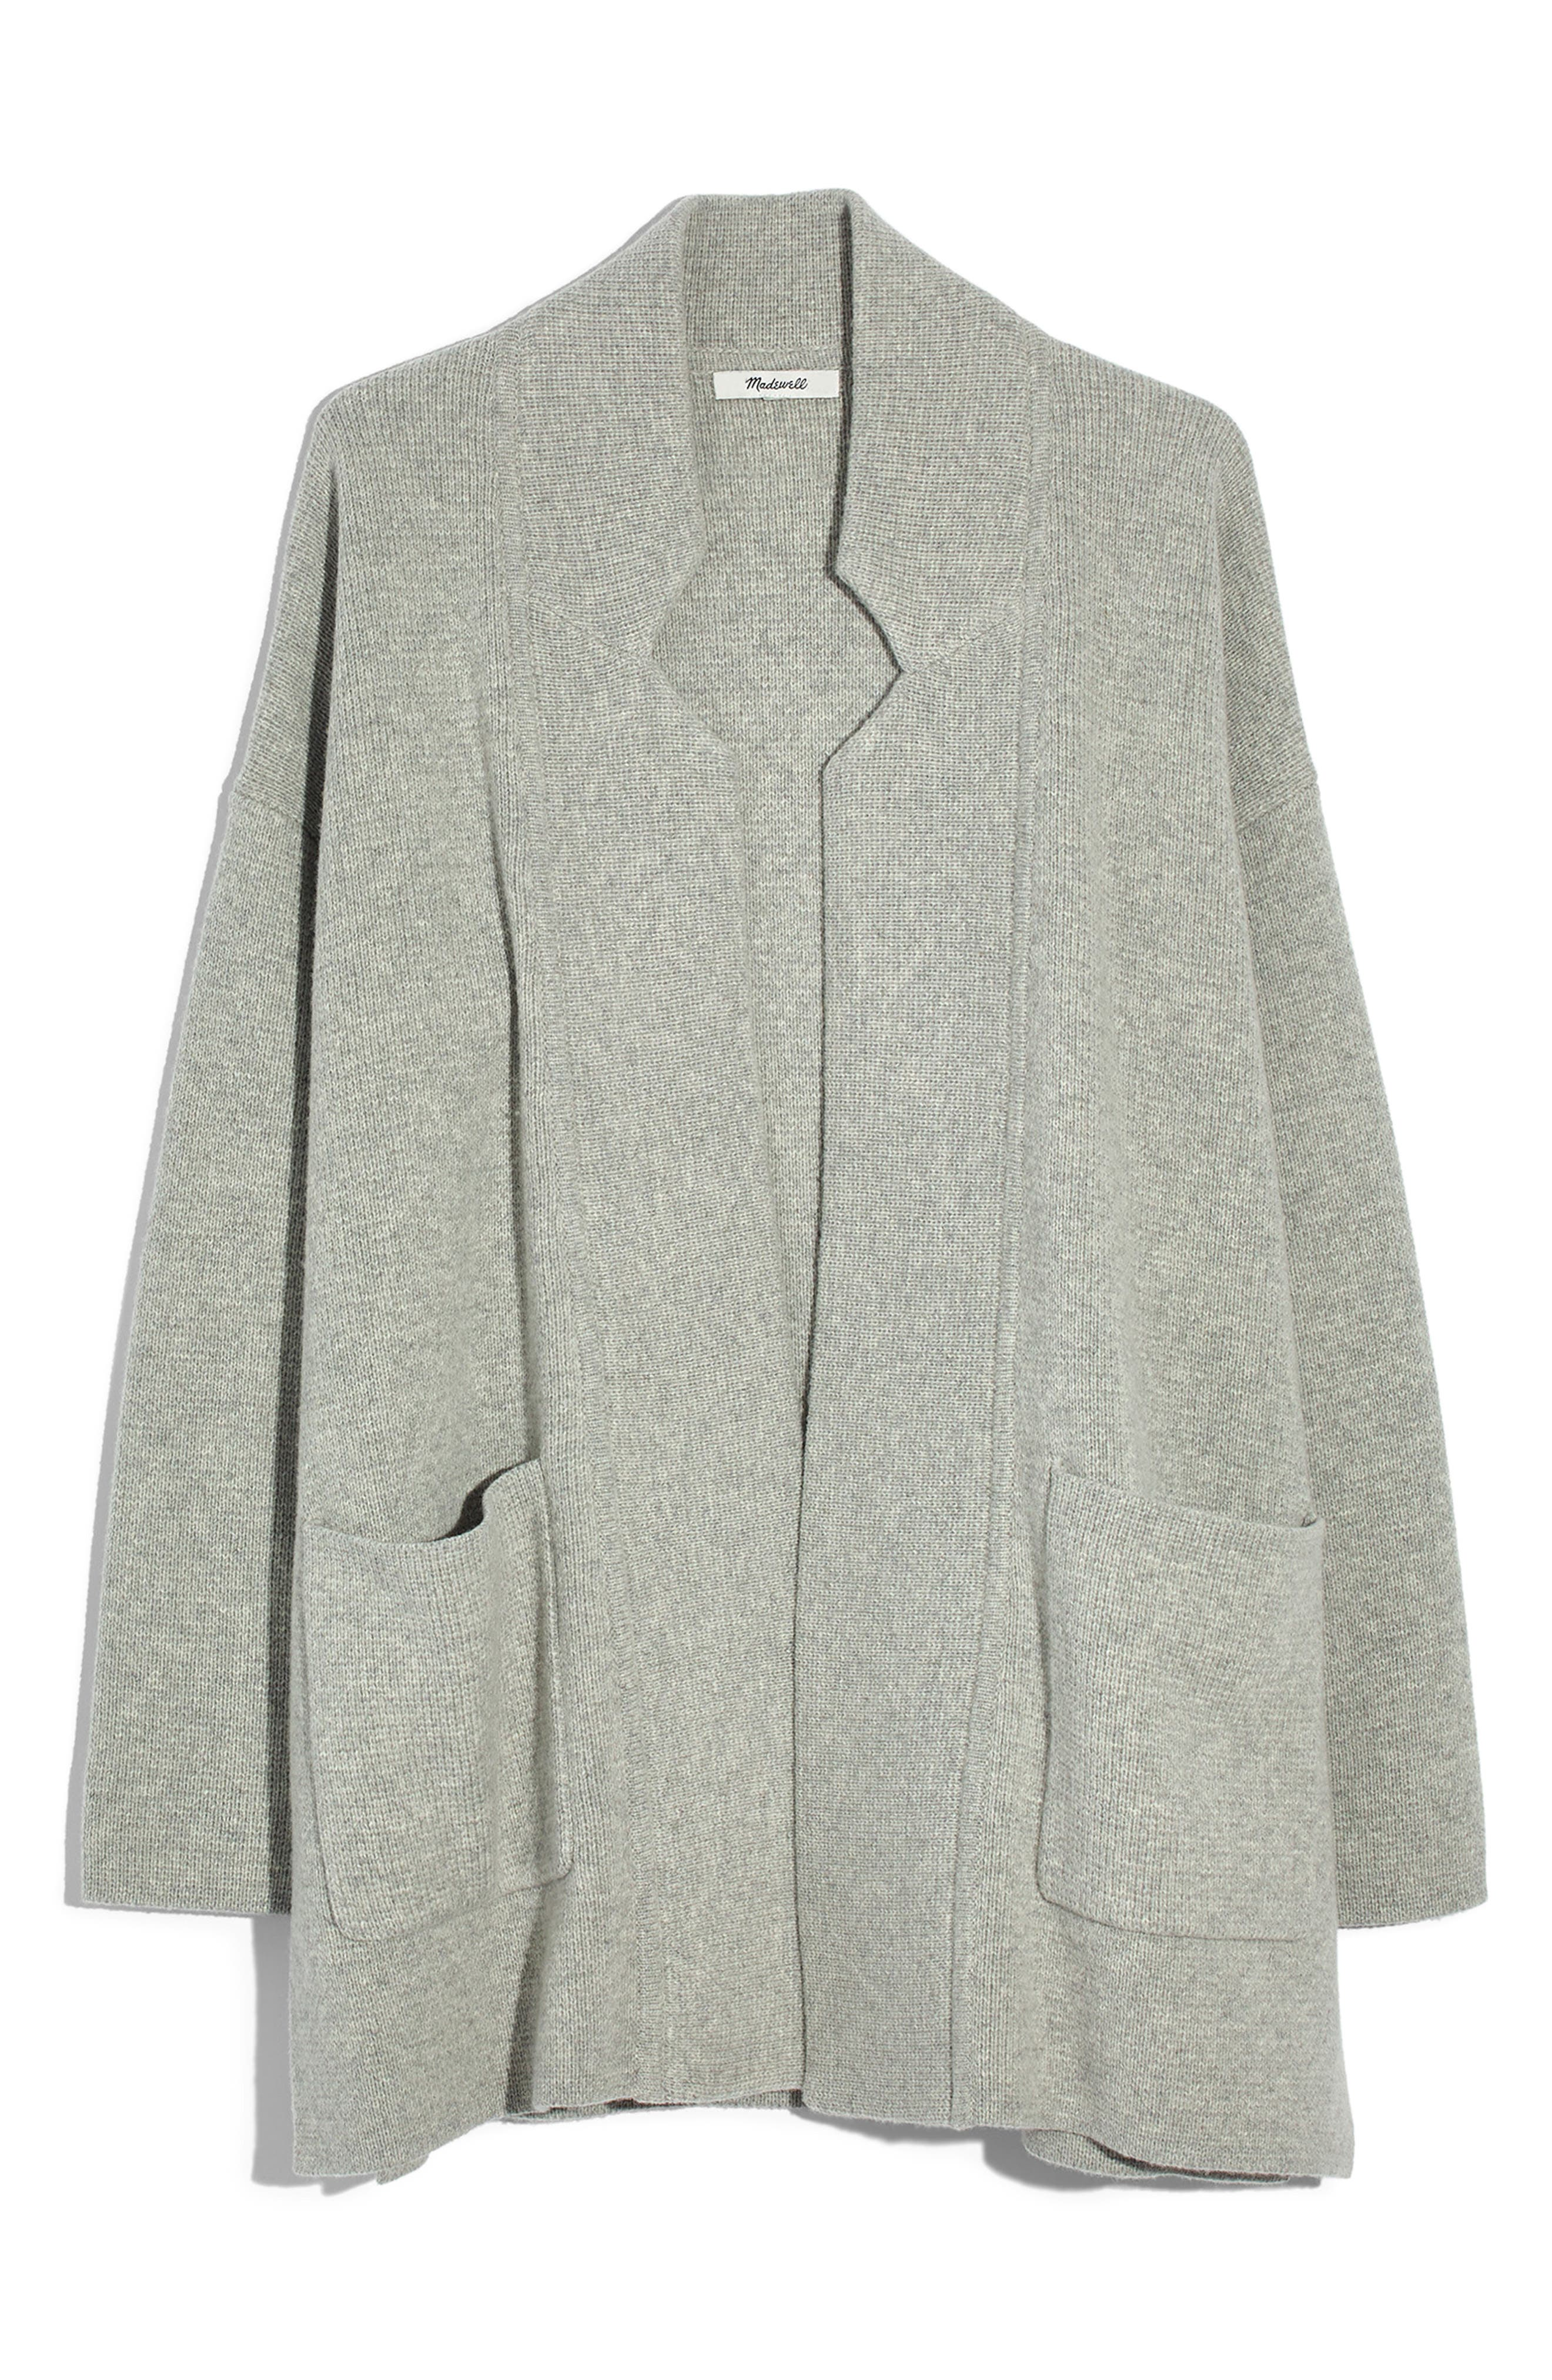 Spencer Sweater Coat,                         Main,                         color, 020